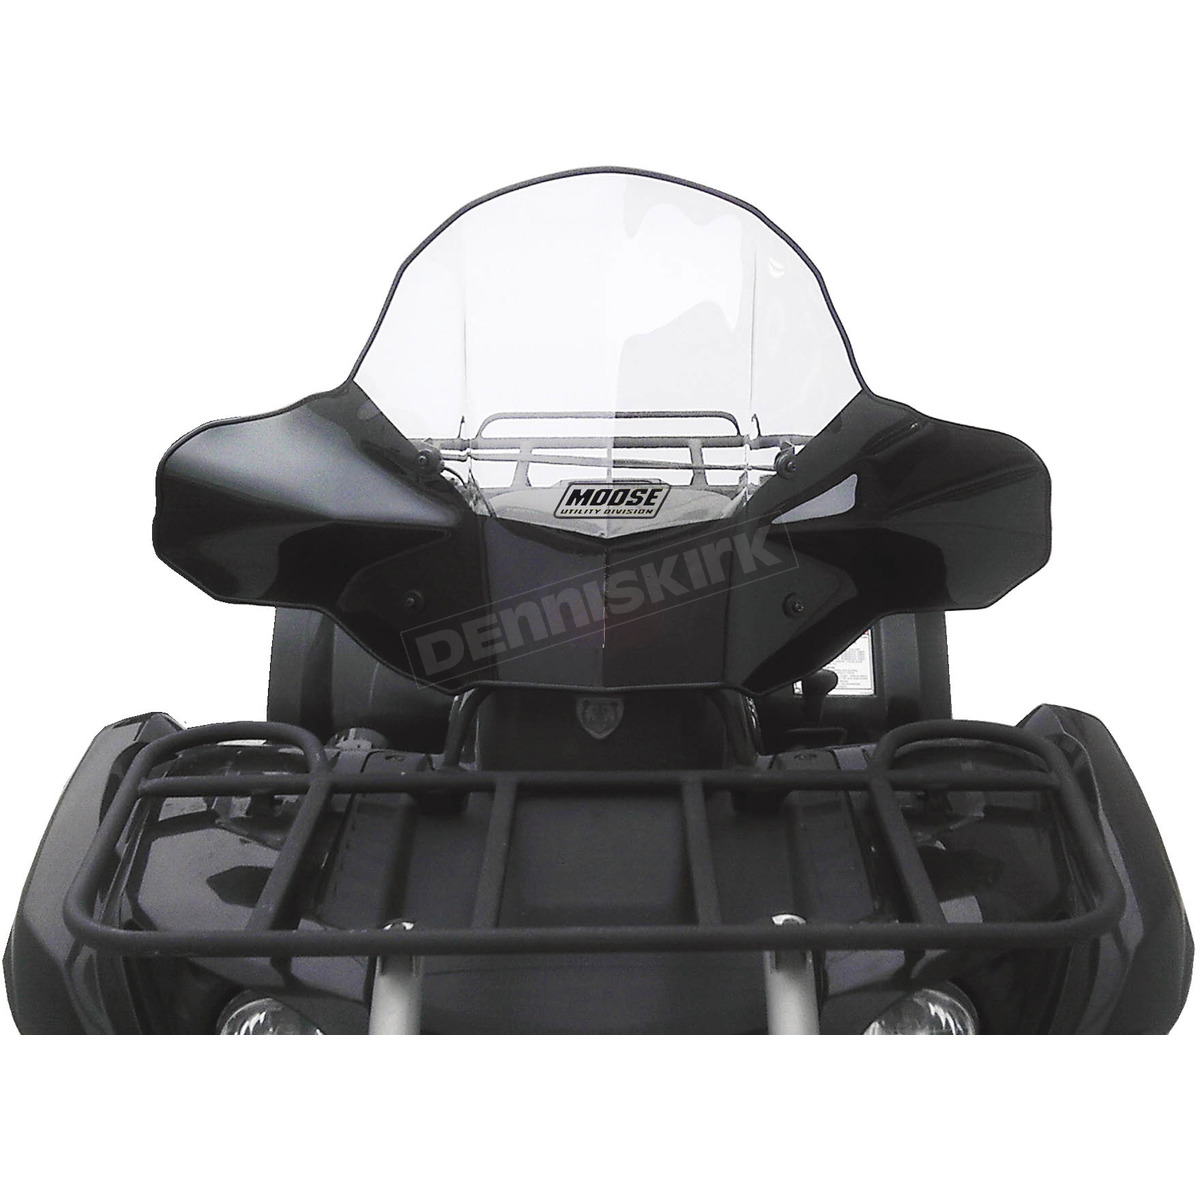 ARCTIC CAT ATV QUICK RELEASE WINDSHIELD WITH MOUNTING KIT